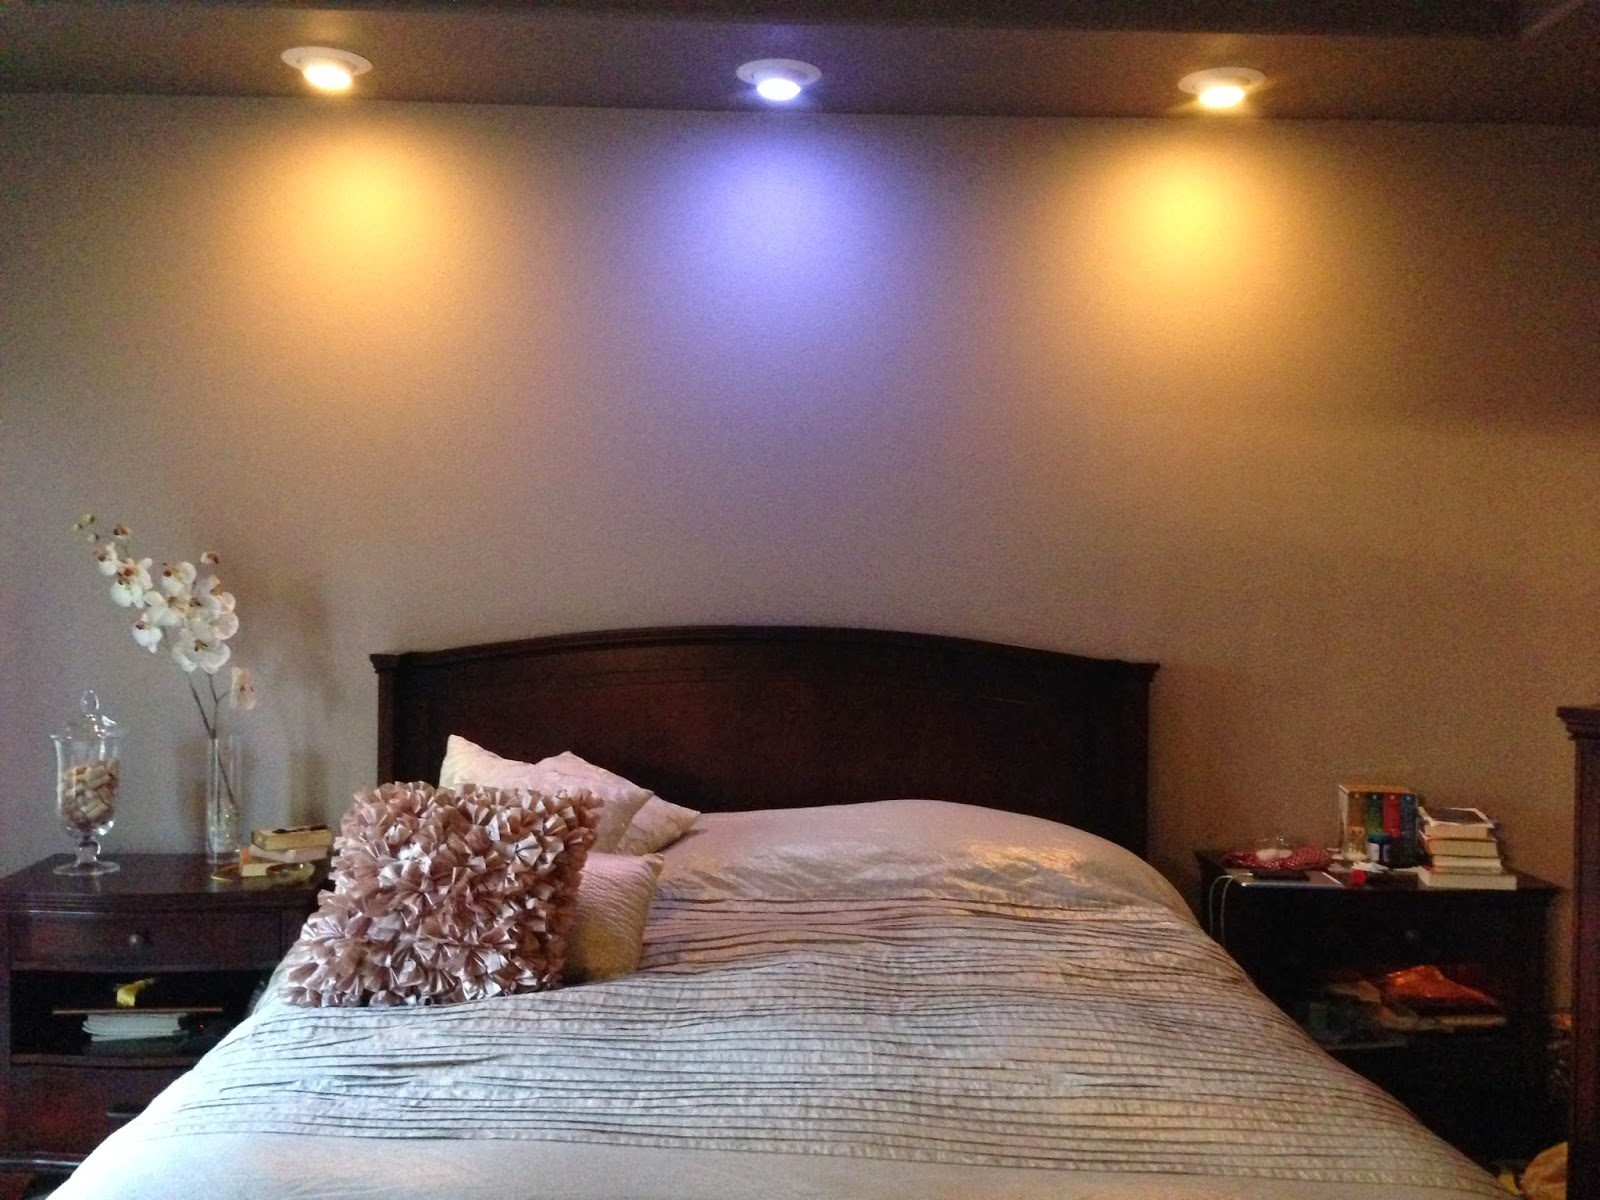 & Let there be lights: Loving the Hue personal wireless lighting system